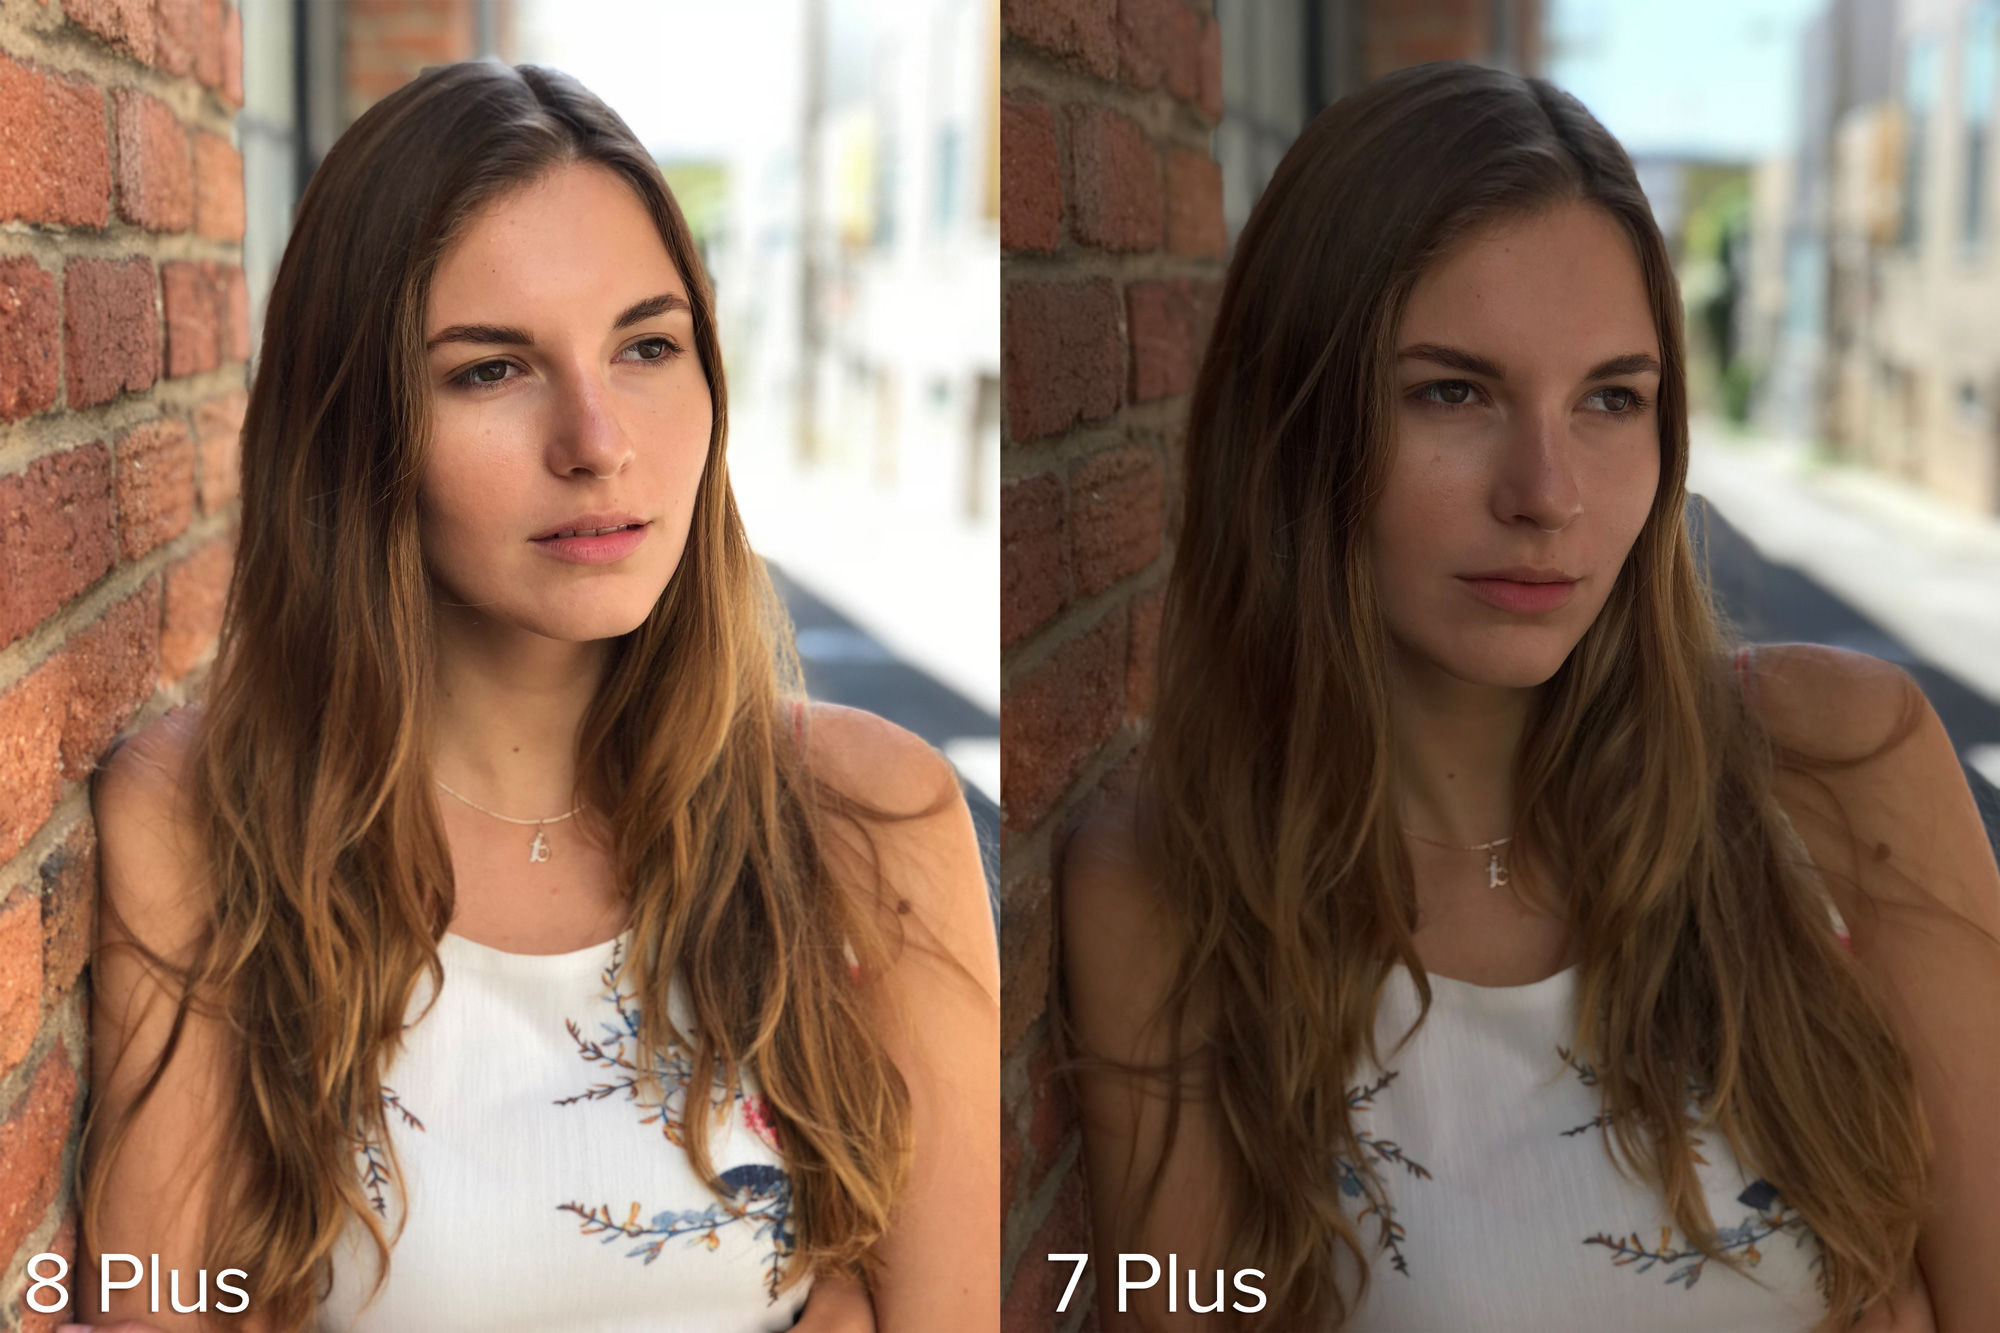 Iphone 8 Plus Vs Iphone 7 Plus Camera Test Which Takes The Best